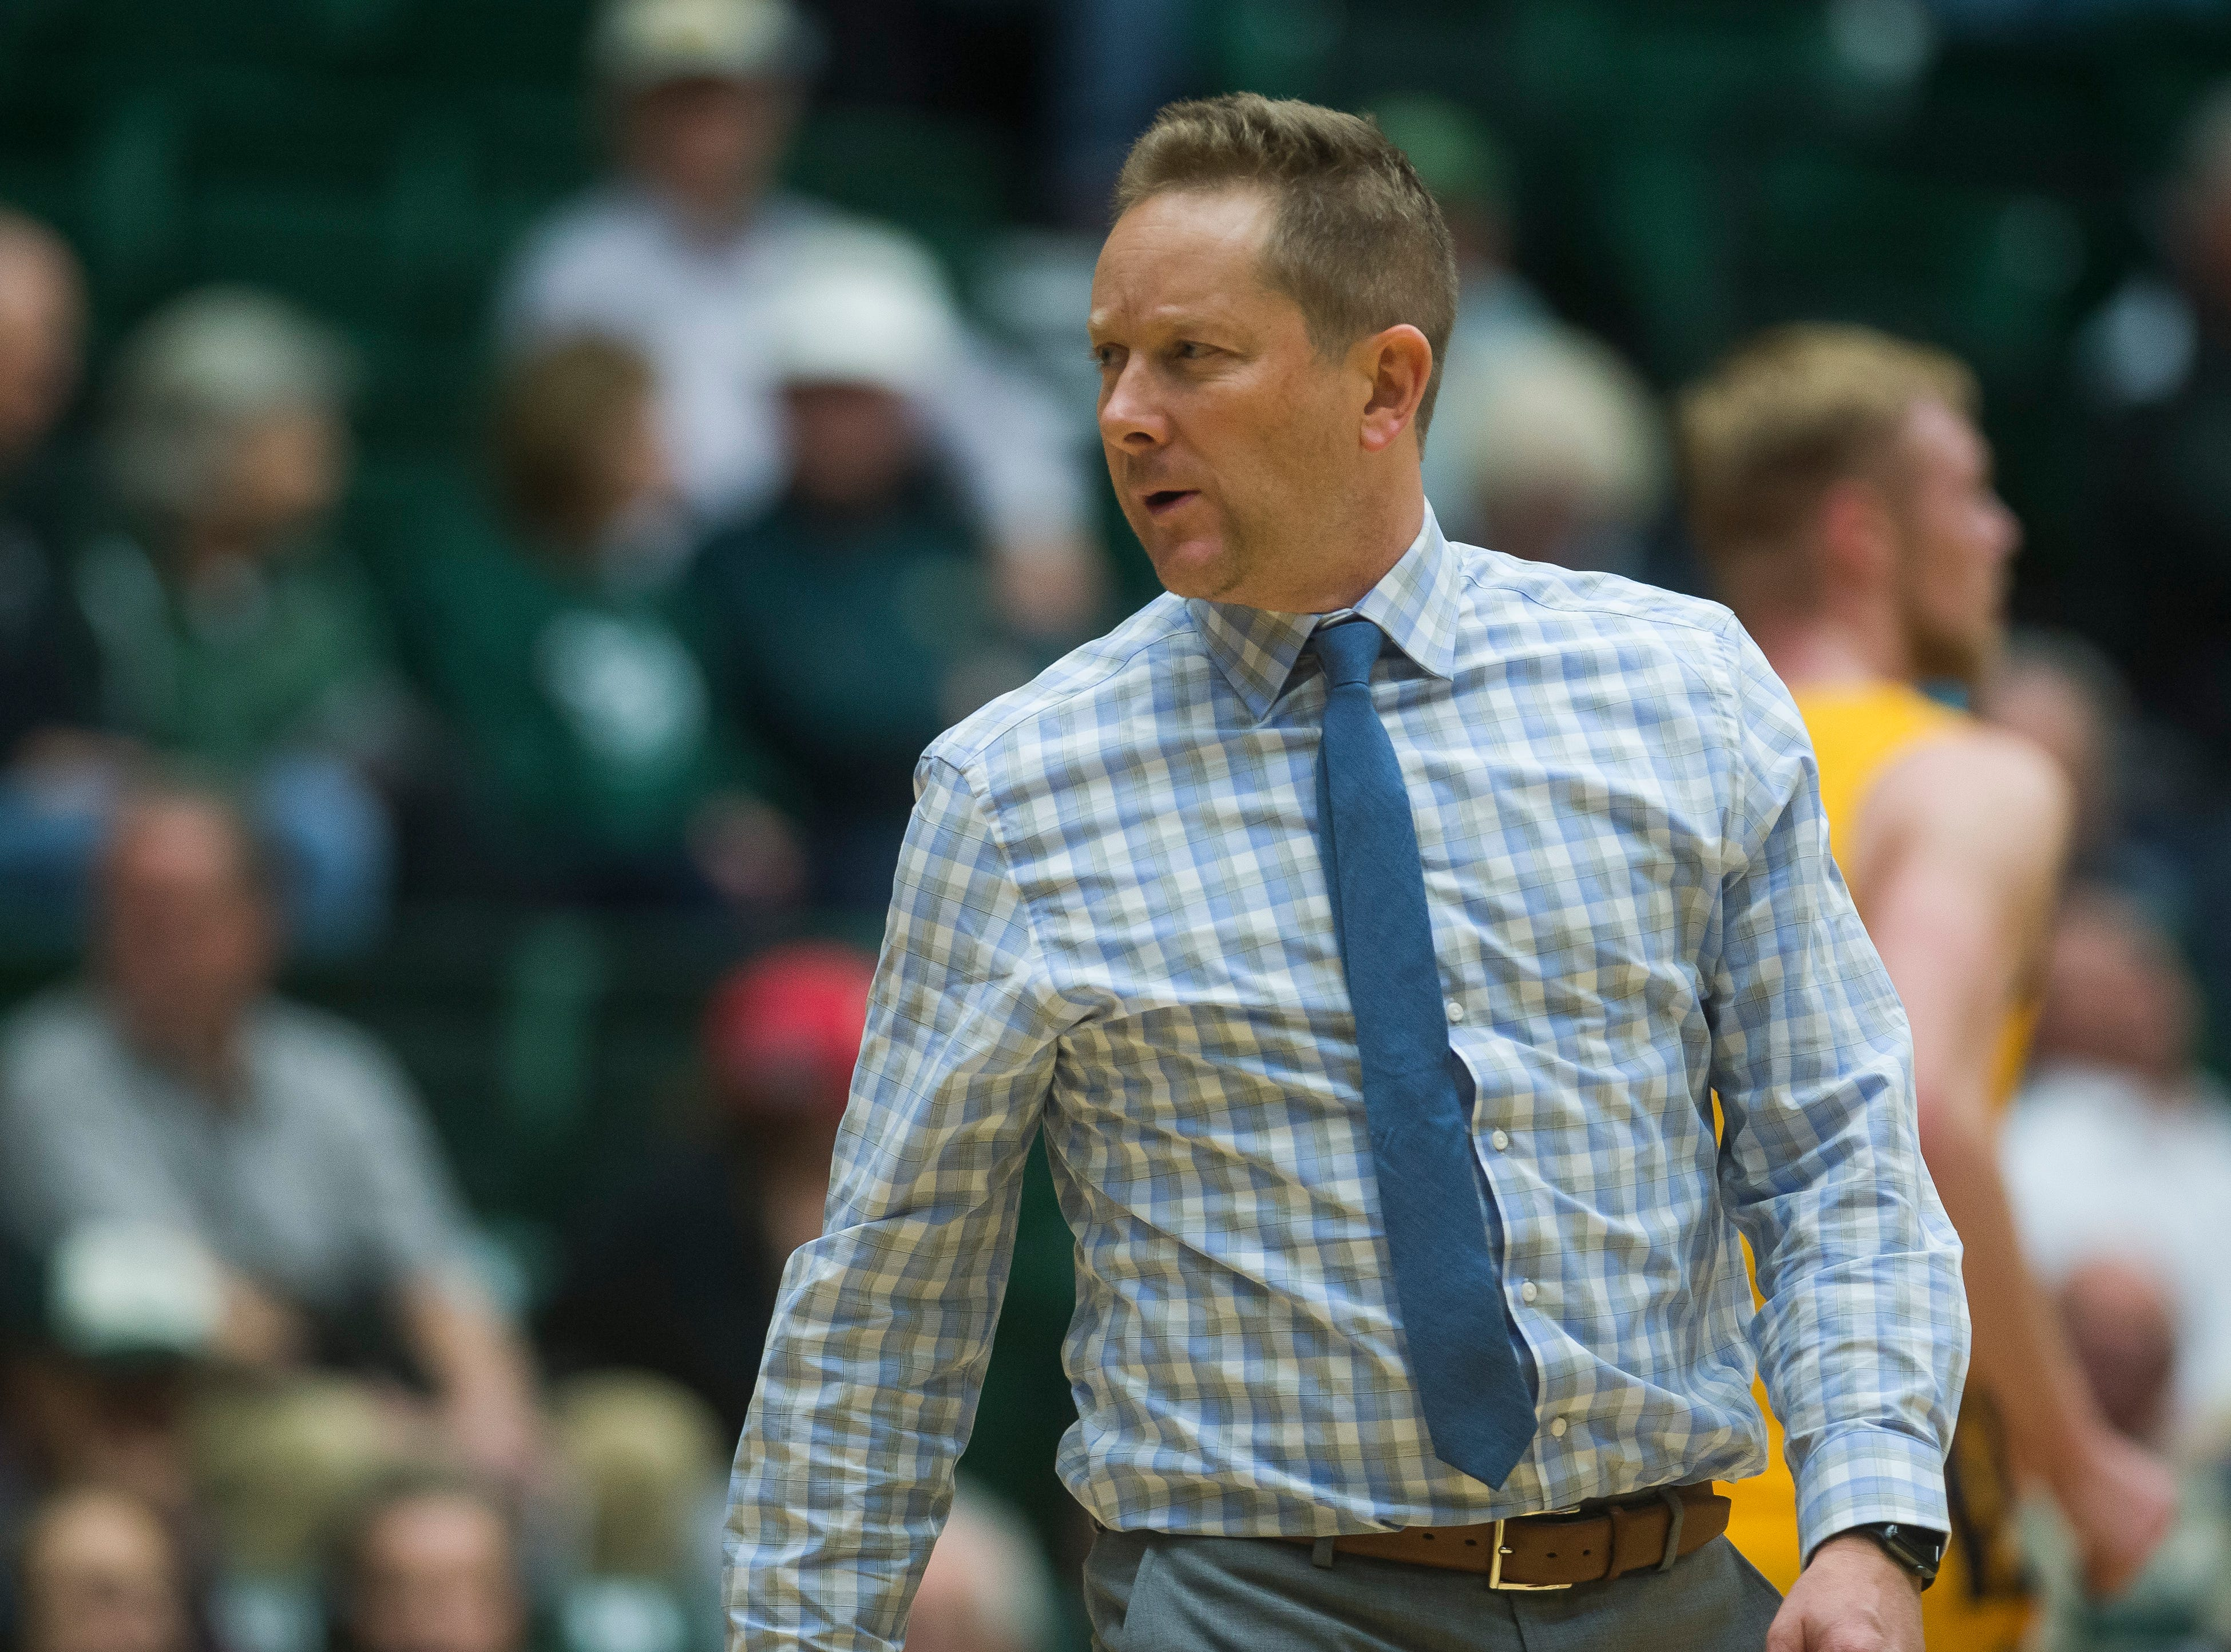 Colorado State University head coach Niko Medved looks on during a timeout during a game against Colorado Christian University on Wednesday, Nov. 7, 2018, at Moby Arena in Fort Collins, Colo.